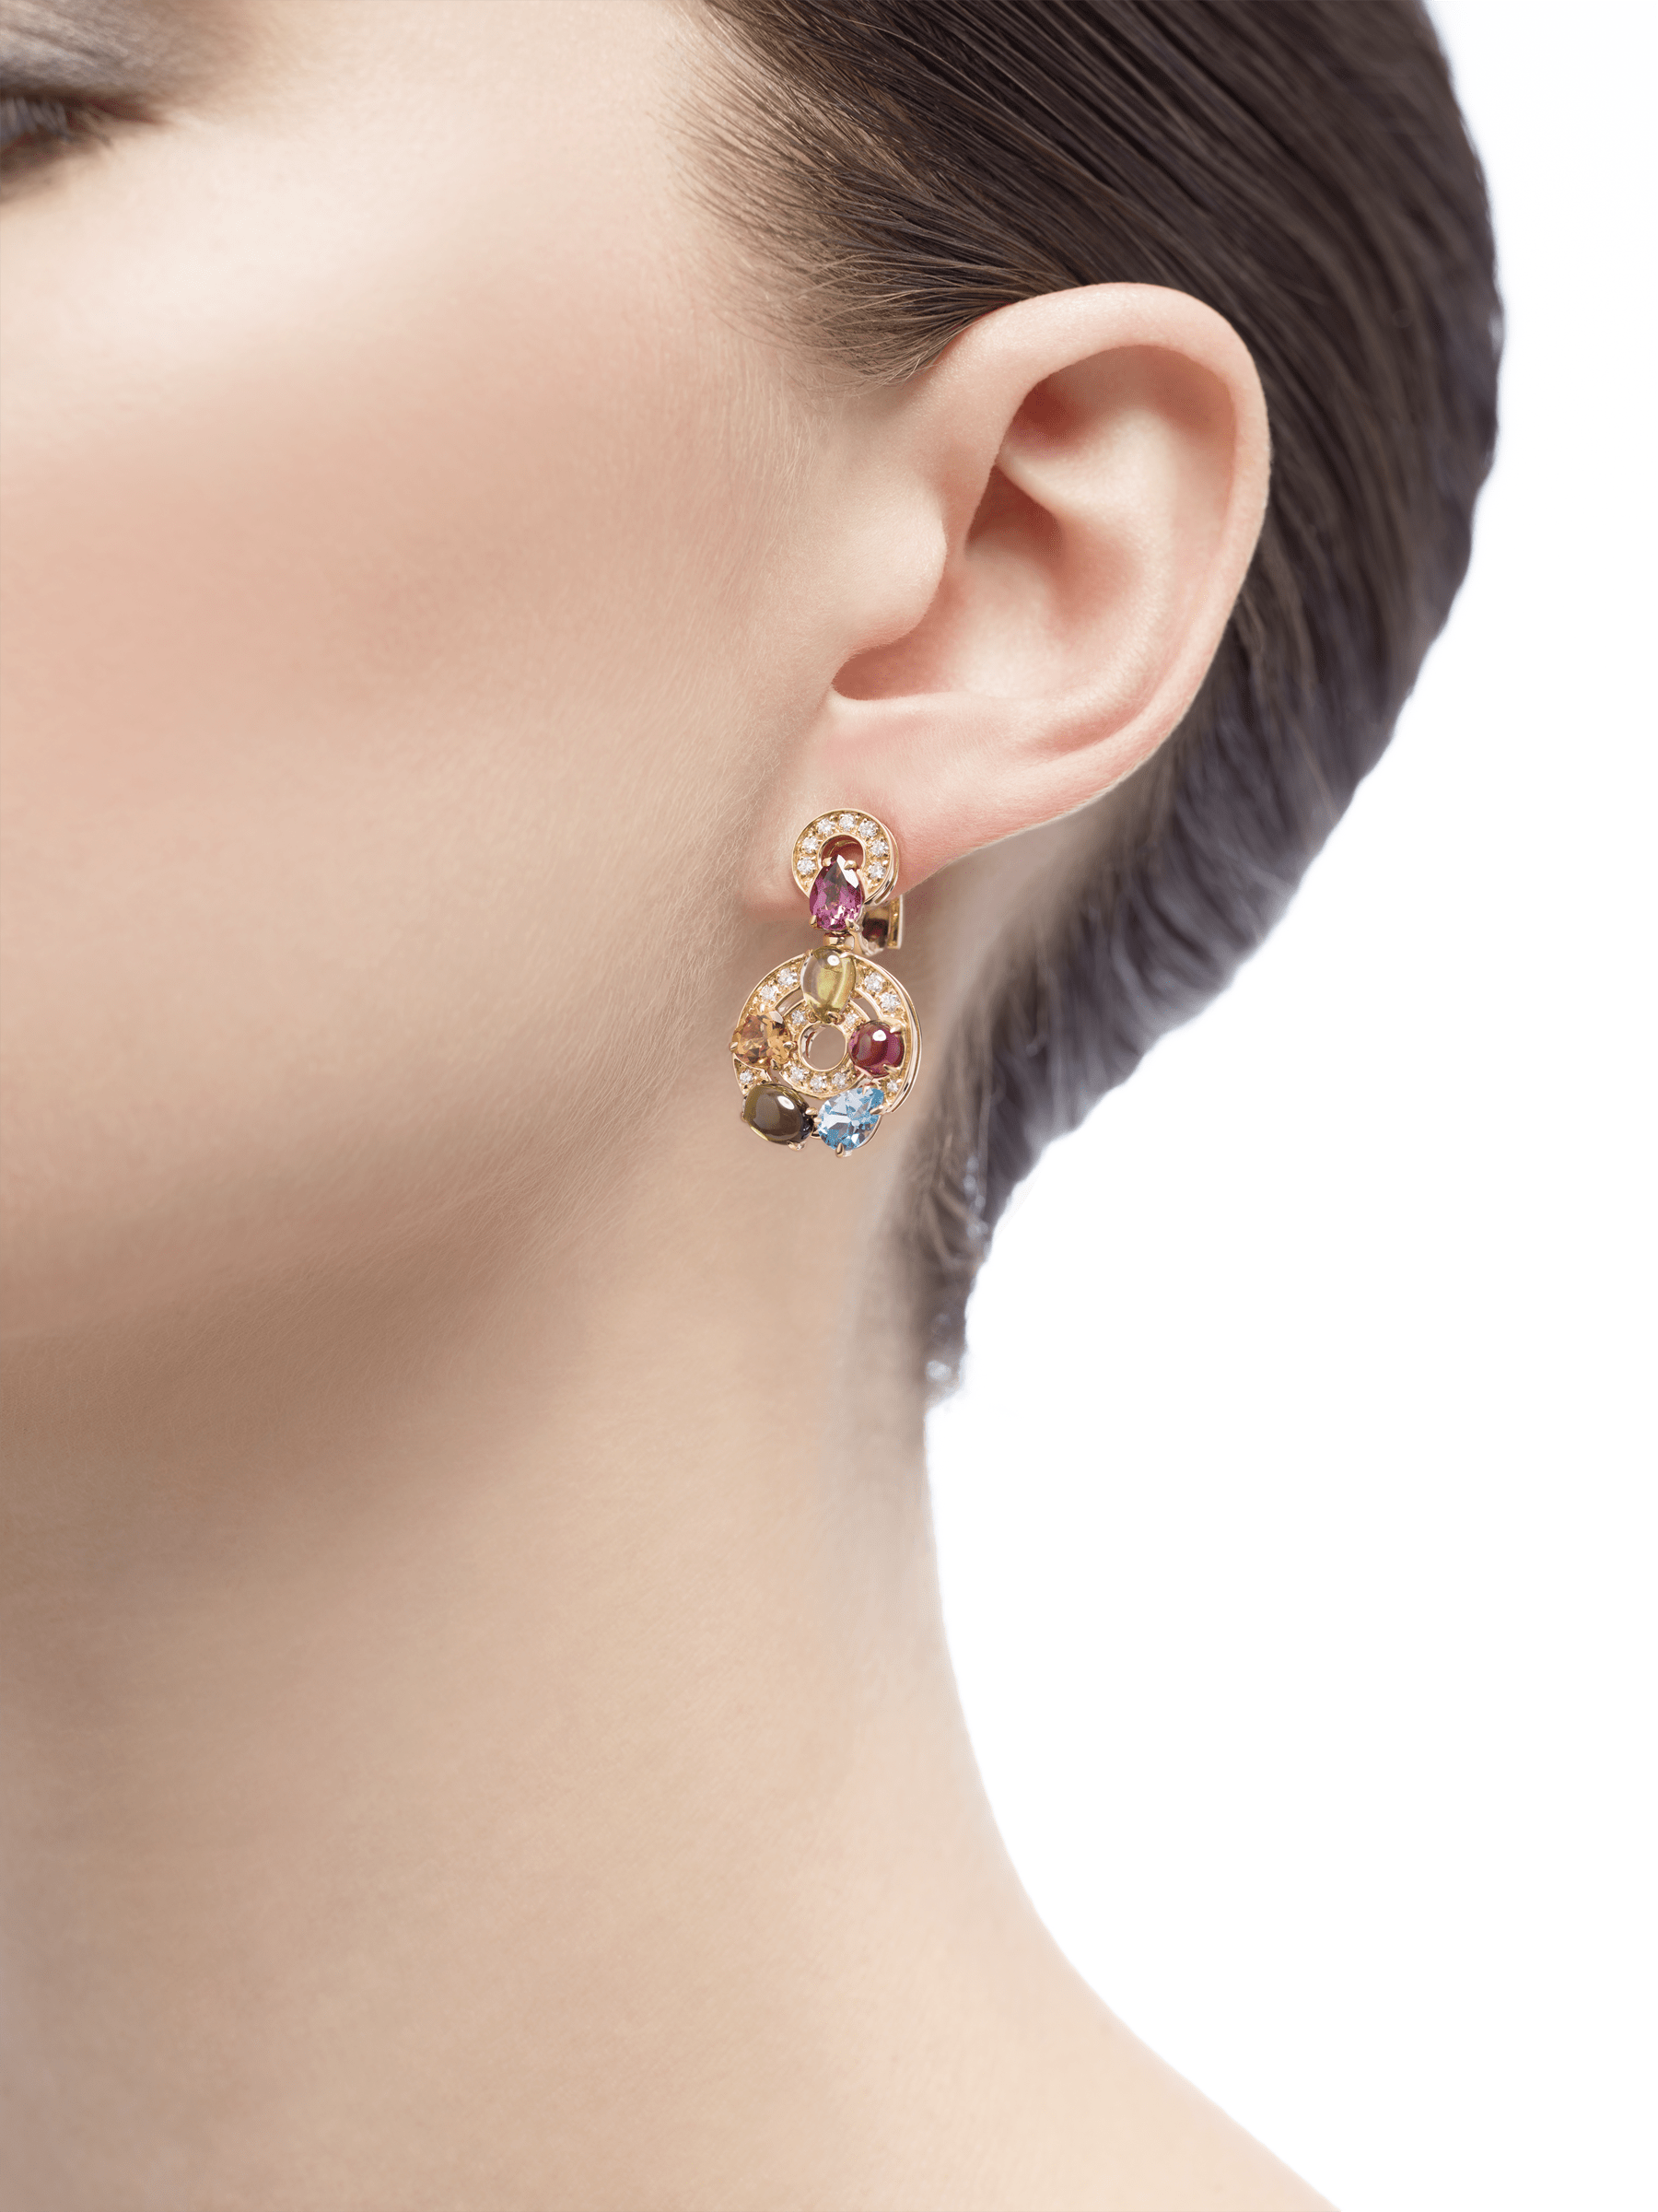 Cerchi 18kt yellow gold earrings set with blue topazes, green tourmalines, peridots, citrine quartz, rhodolite garnets and pavé diamonds 339141 image 4